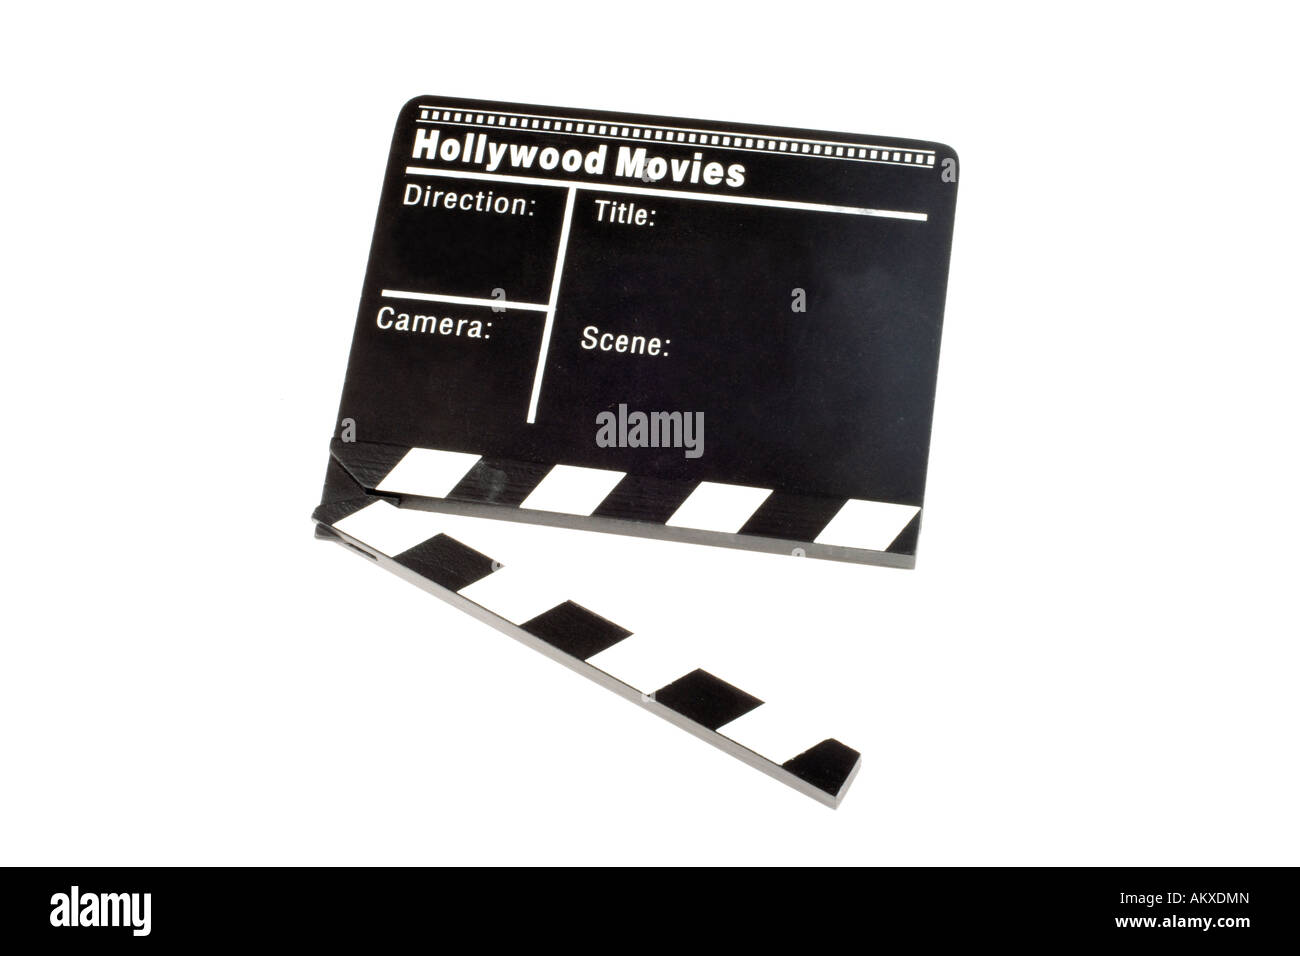 Movie Clapper Board on white background - Stock Image